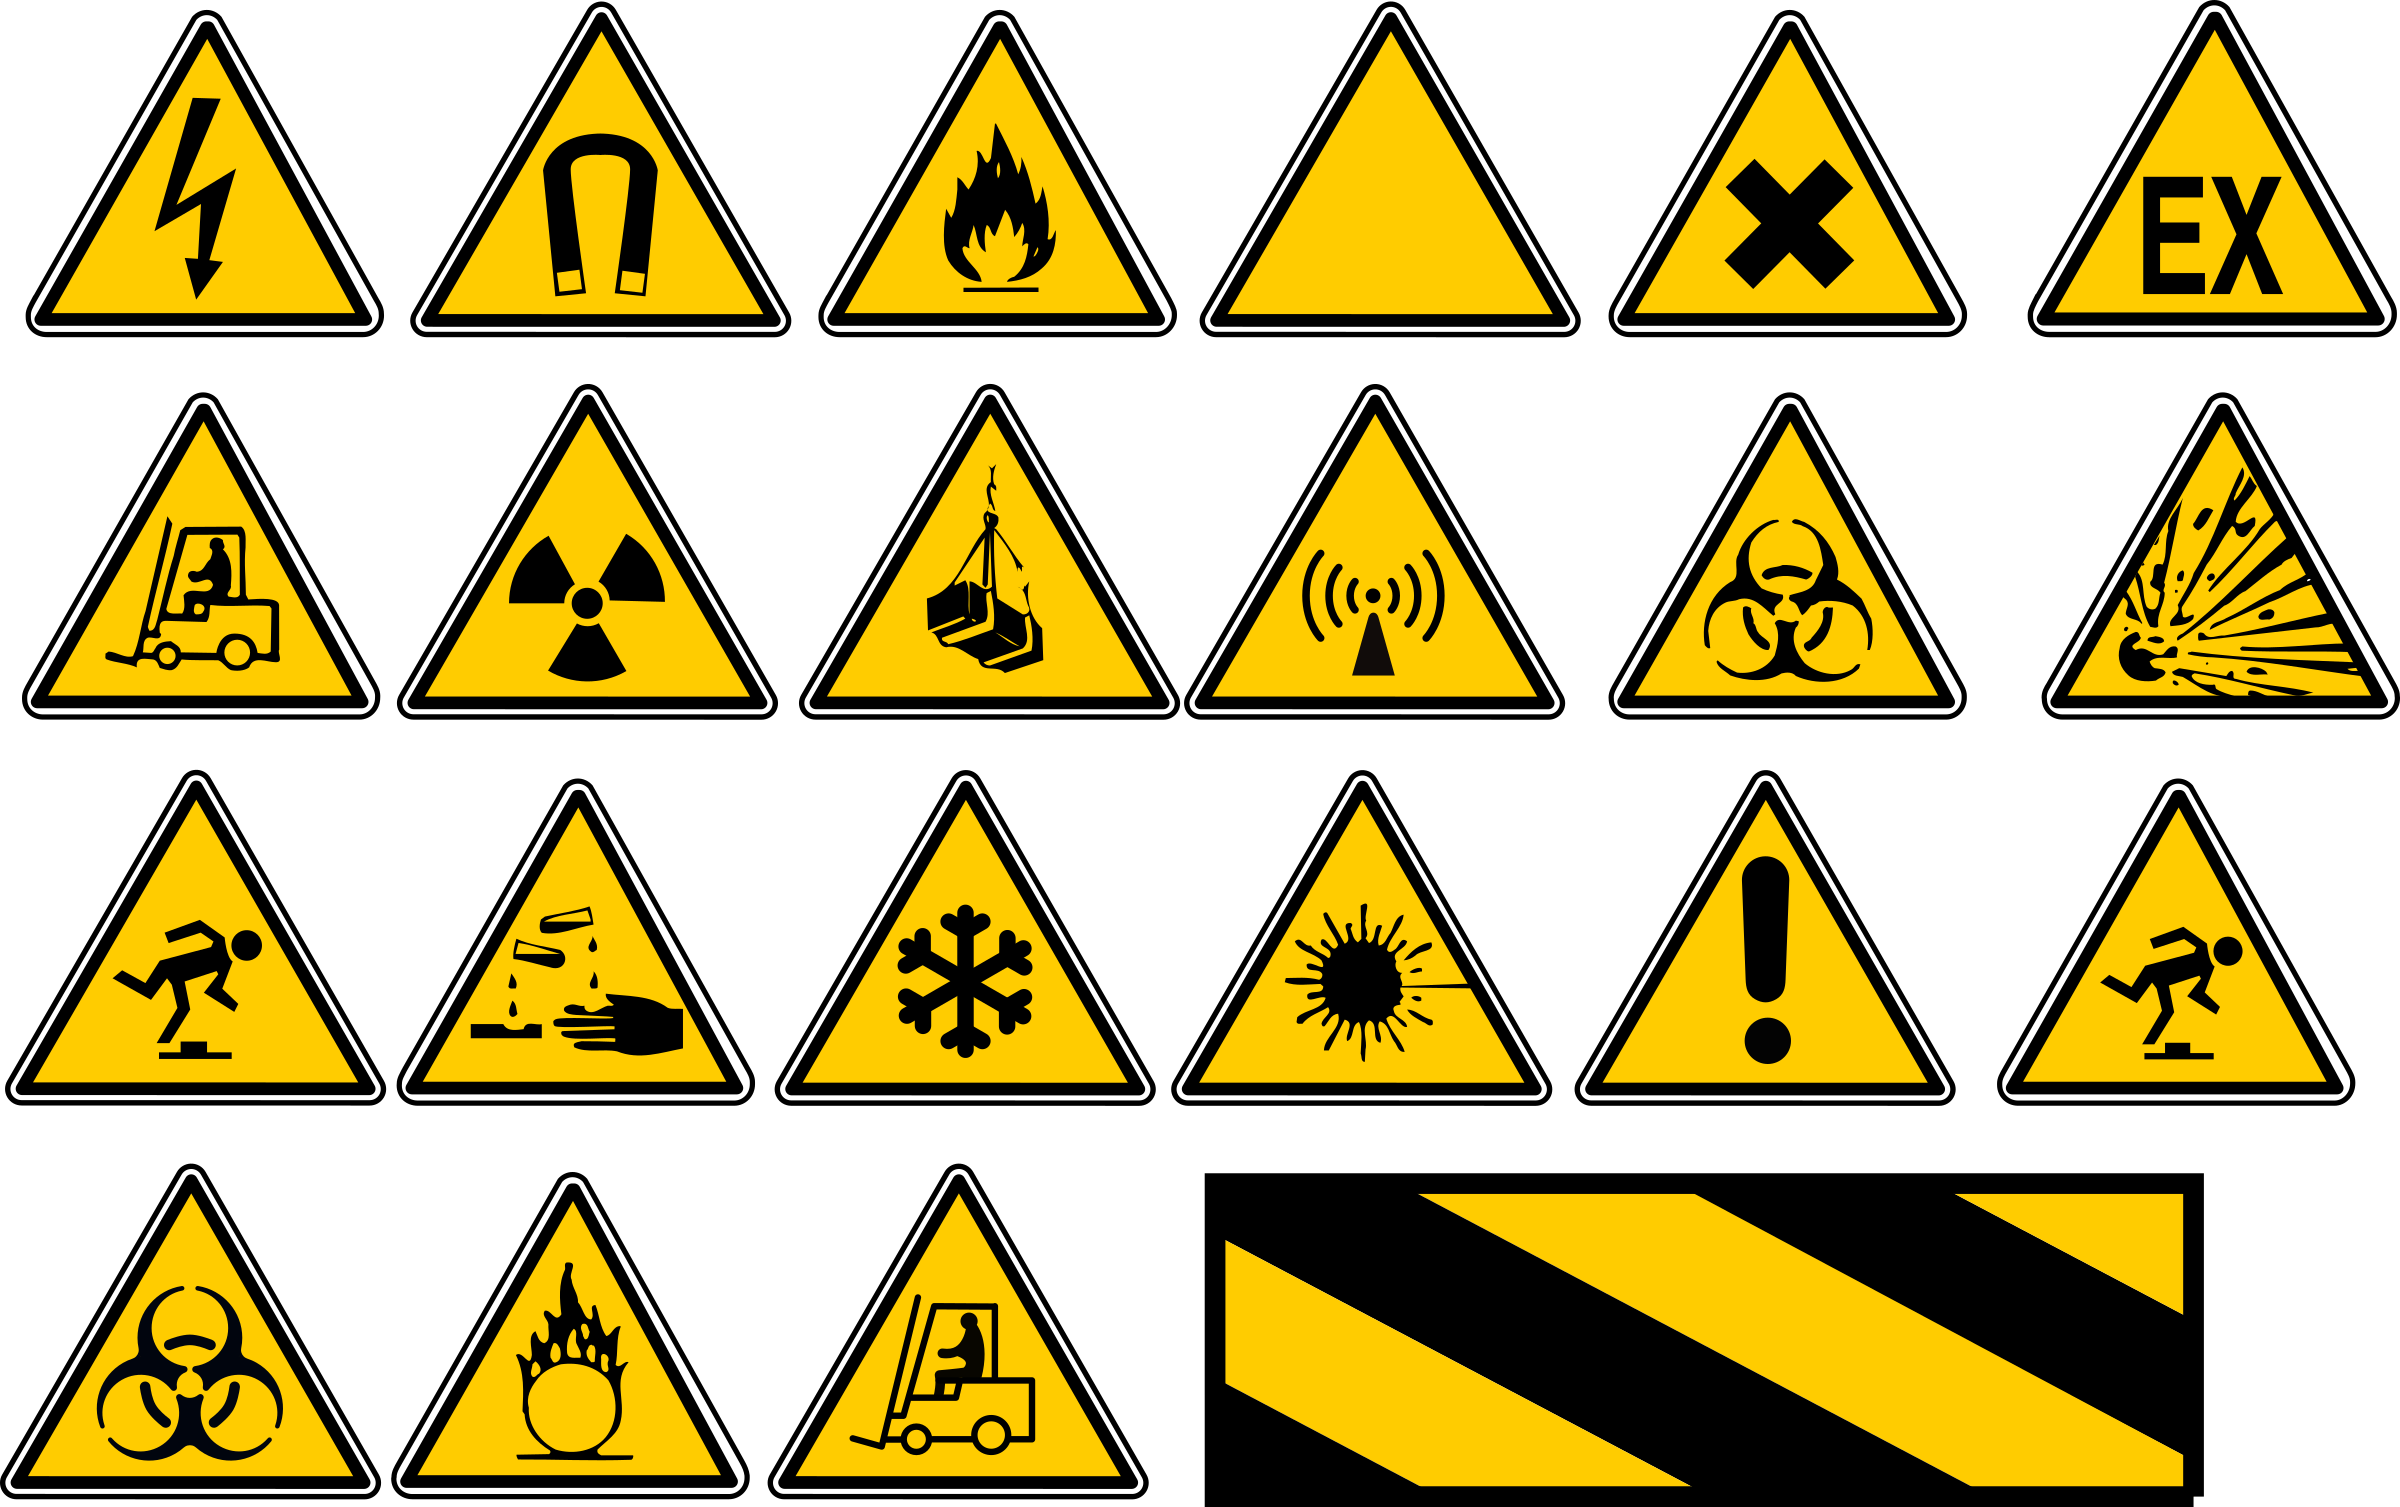 Warning Signs by yves_guillou